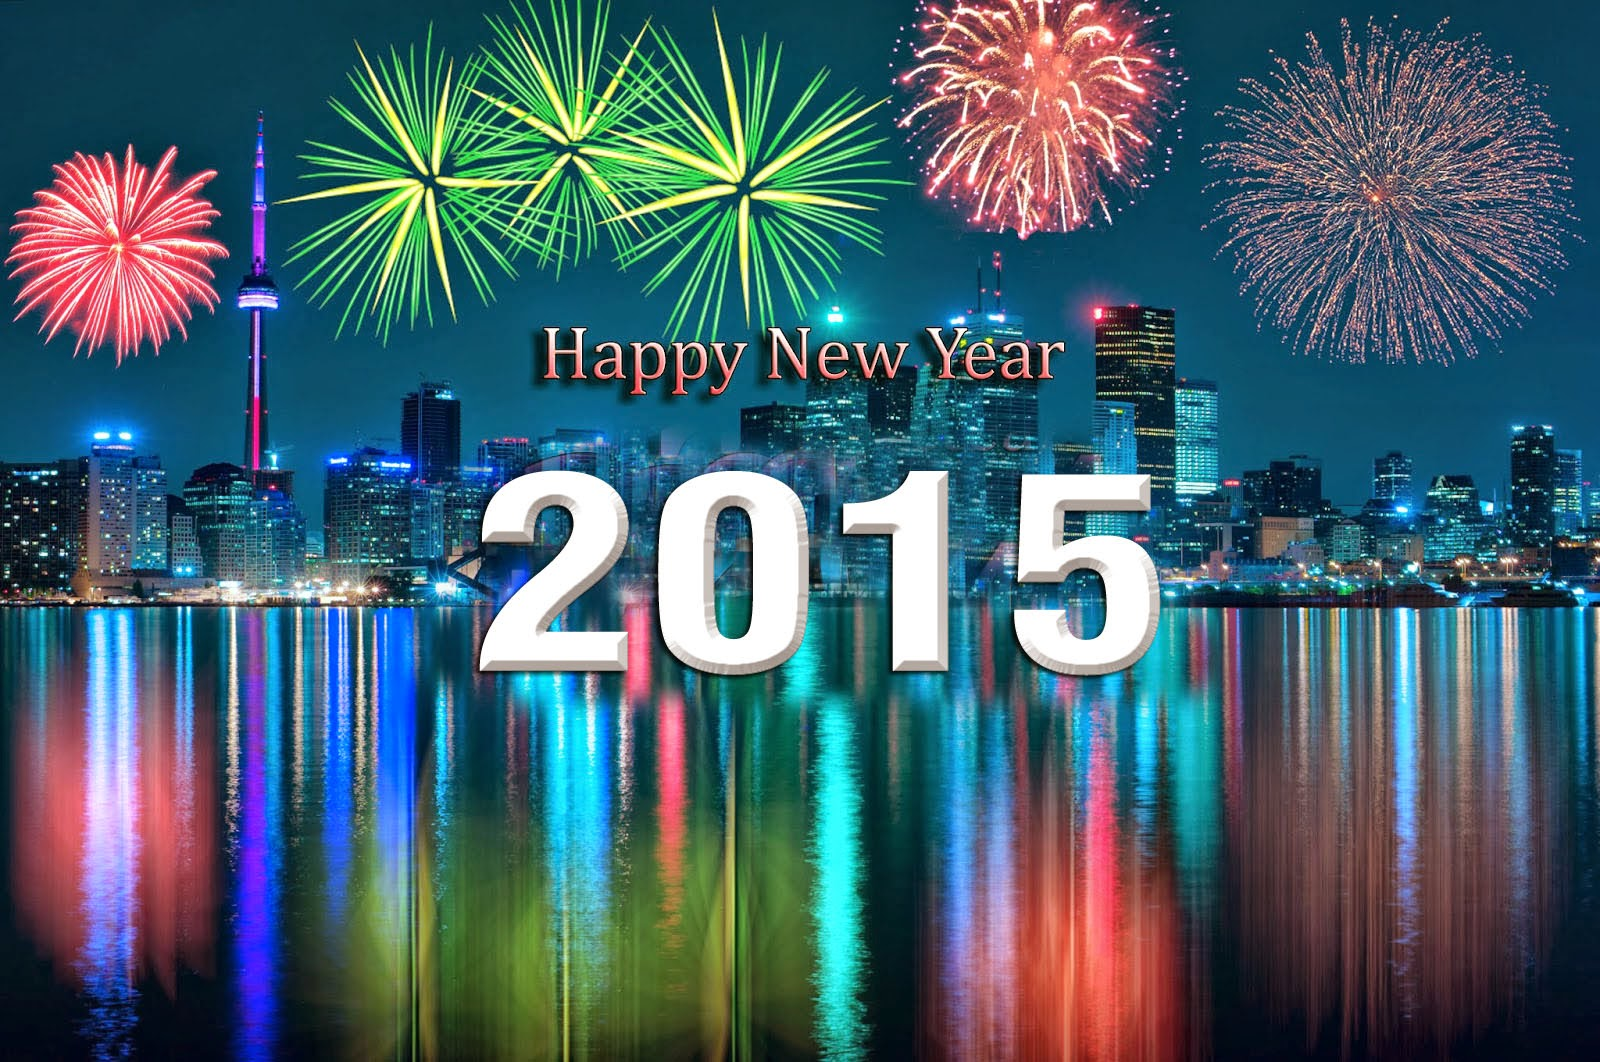 Happy-New-Year-hd-wallpaper-2015.jpg